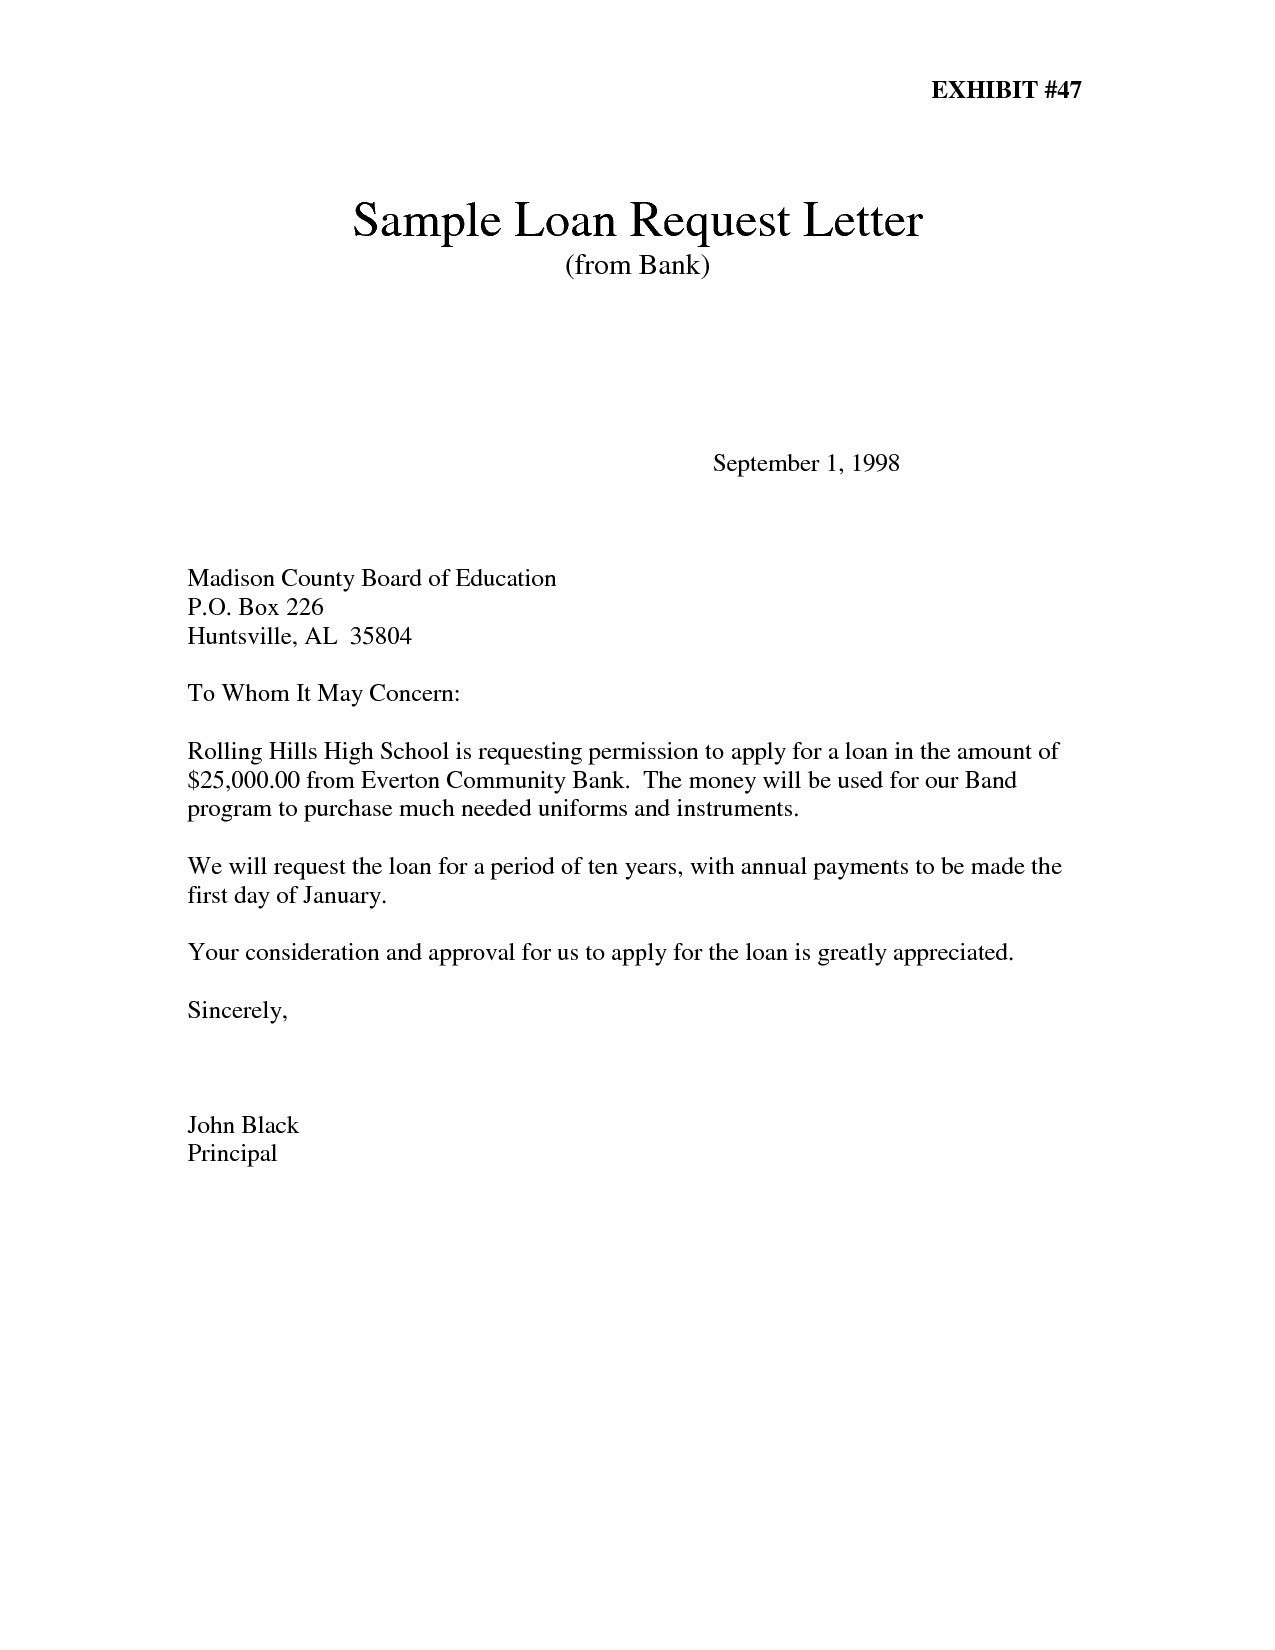 Personal Loan Repayment Letter Template - Letter format Loan Request Refrence Sample Loan Reques Letter